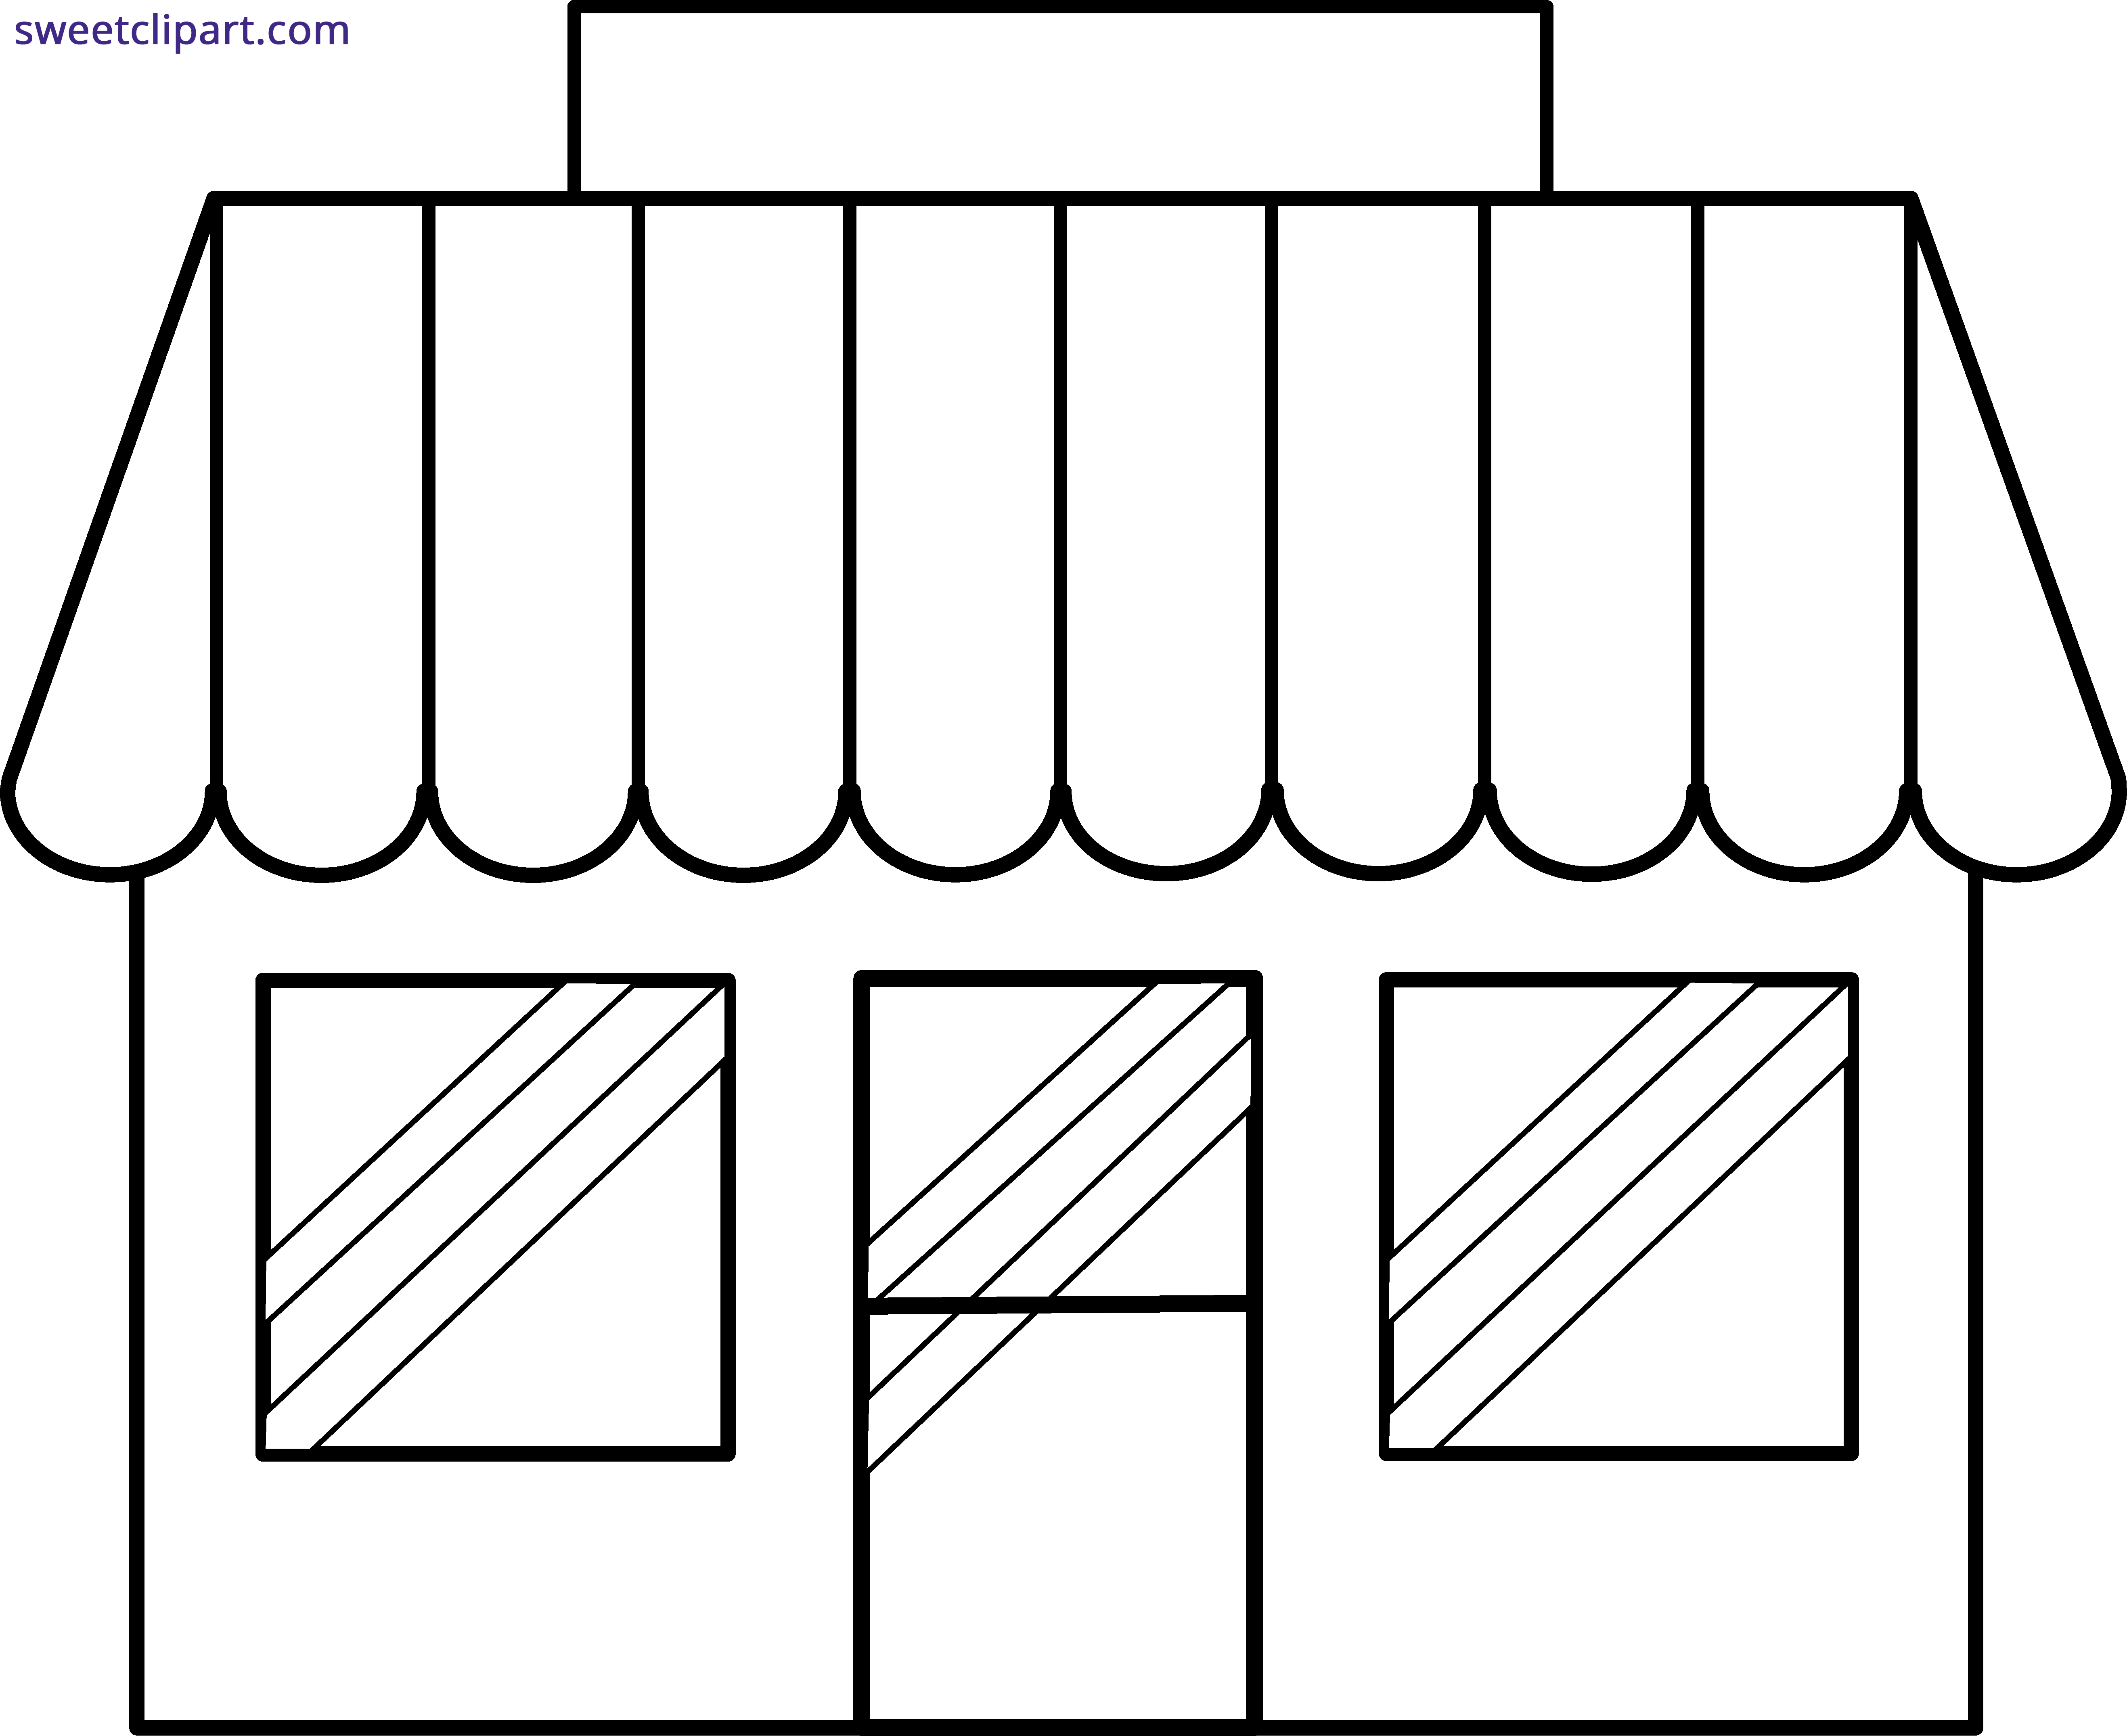 library Store clipart black and white. Shop outline sweet clip